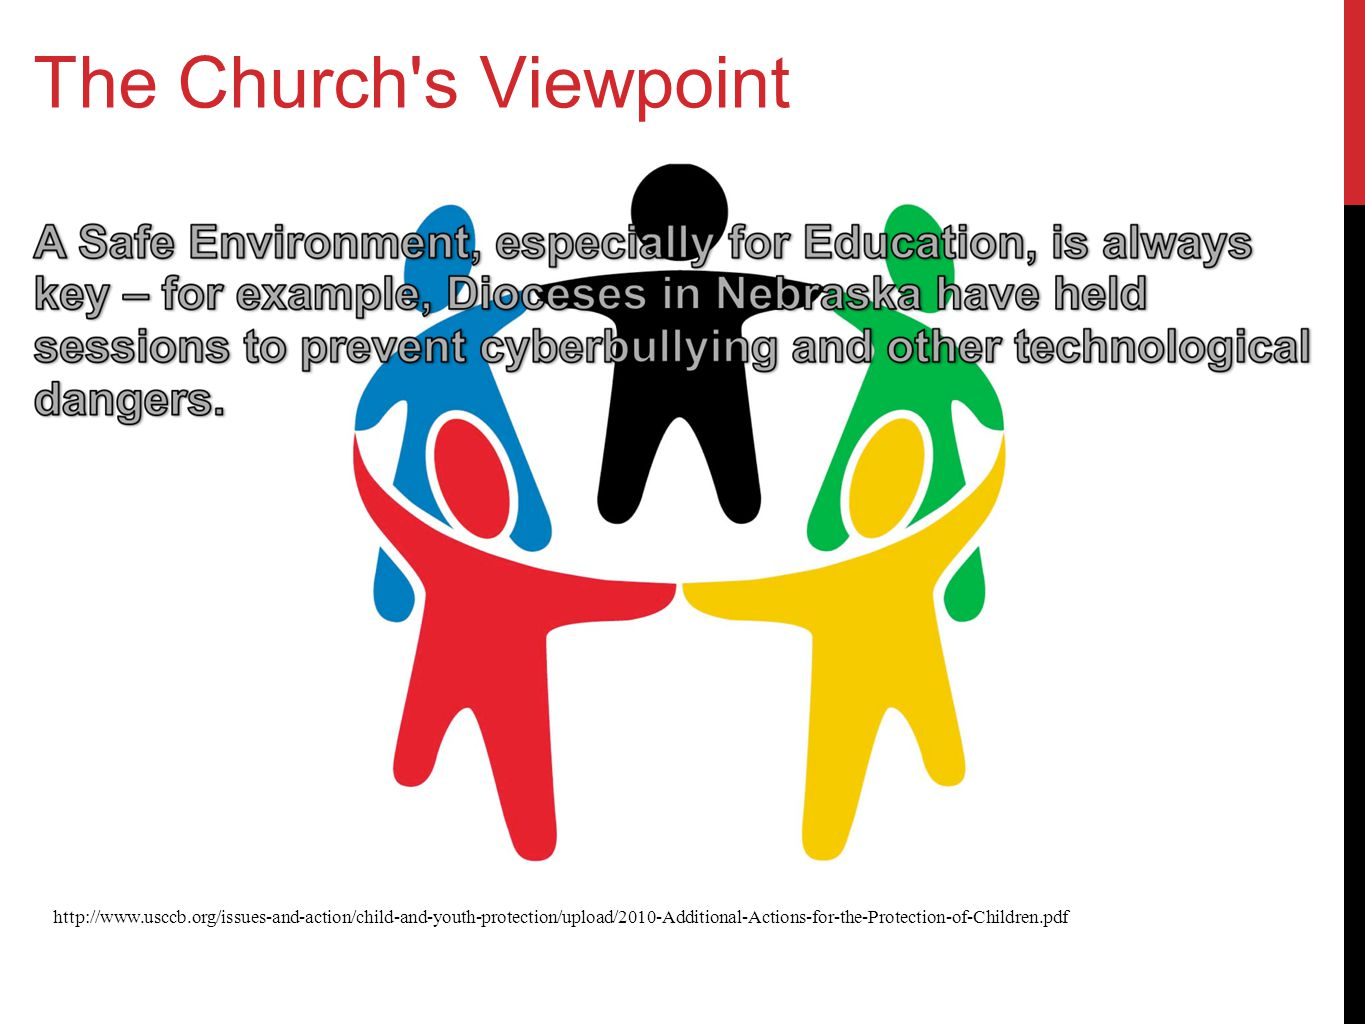 The Church's Viewpoint http://www.usccb.org/issues-and-action/child-and-youth-protection/upload/2010-Additional-Actions-for-the-Protection-of-Children